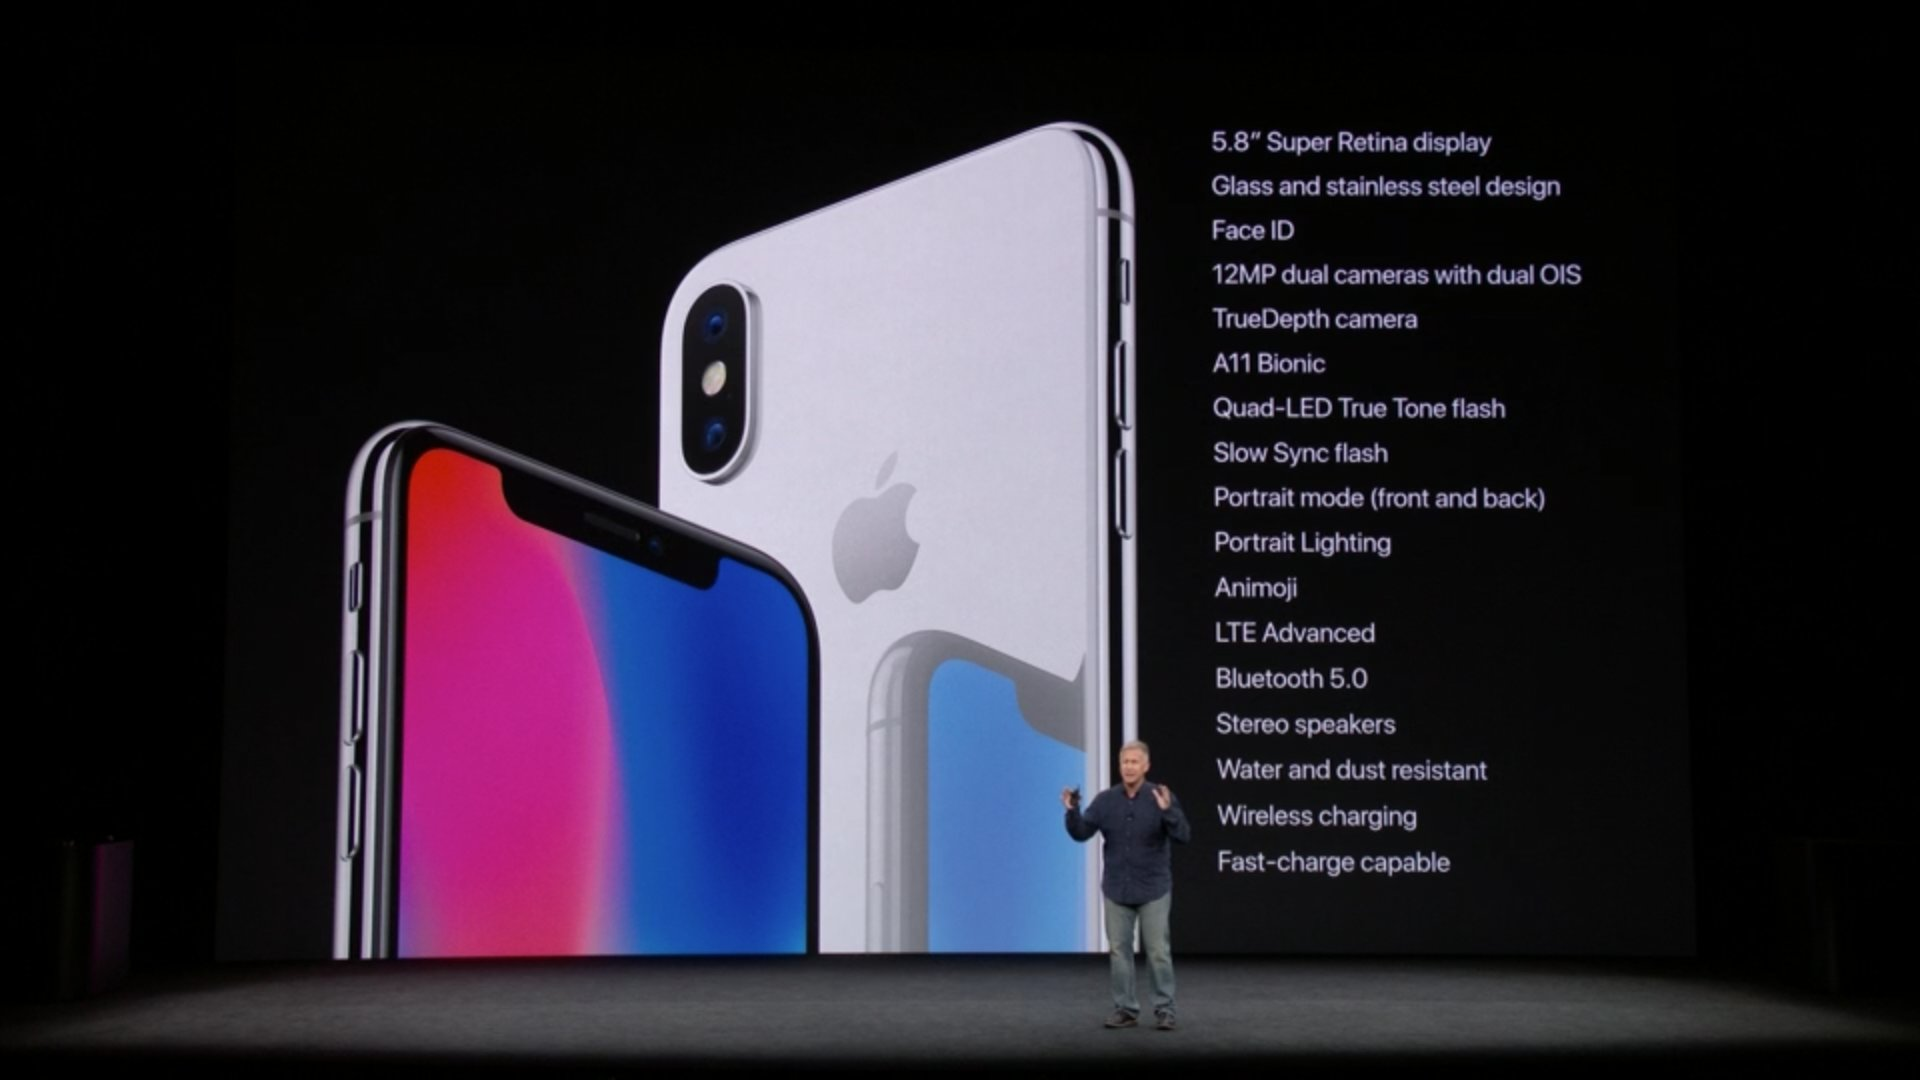 One last look at the iPhone X and all of the new features. #AppleEvent https://t.co/eWr5HeWZkk